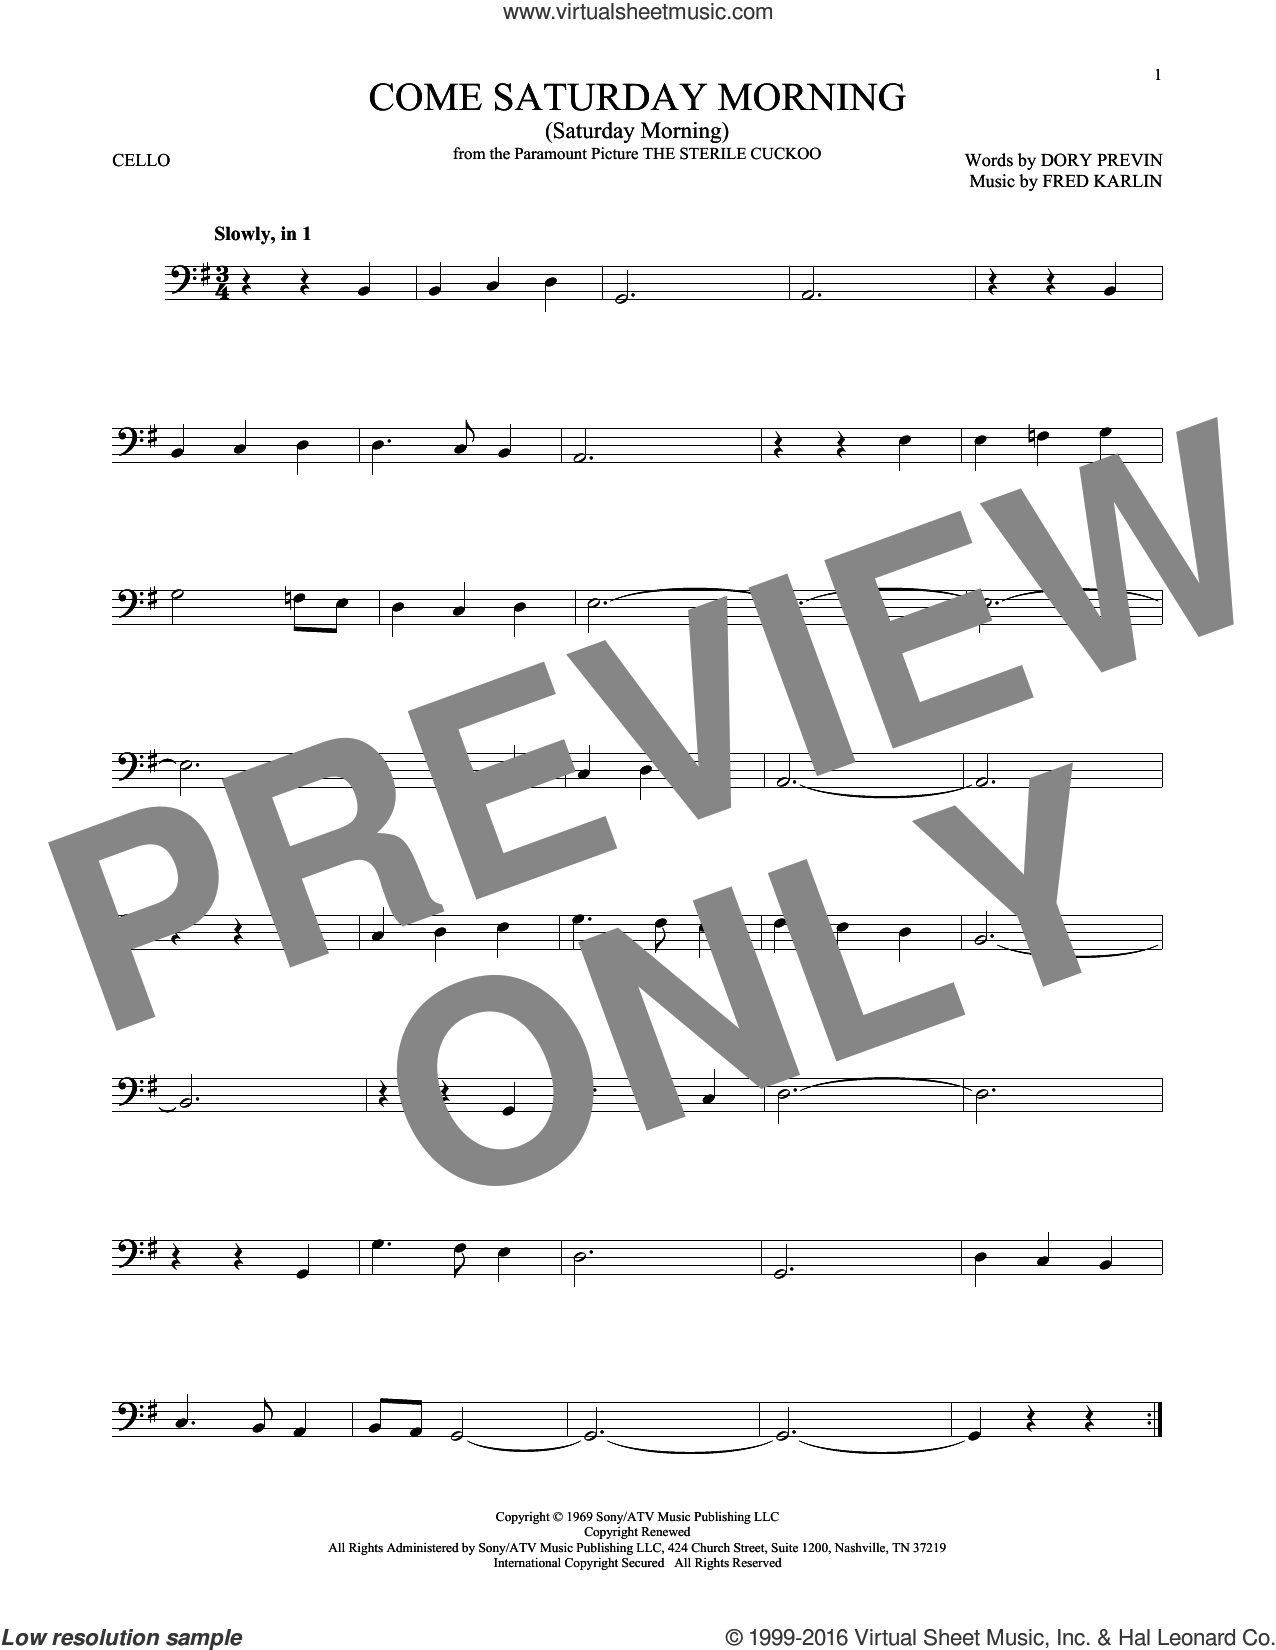 Come Saturday Morning (Saturday Morning) sheet music for cello solo by Dory Previn and Fred Karlin, intermediate